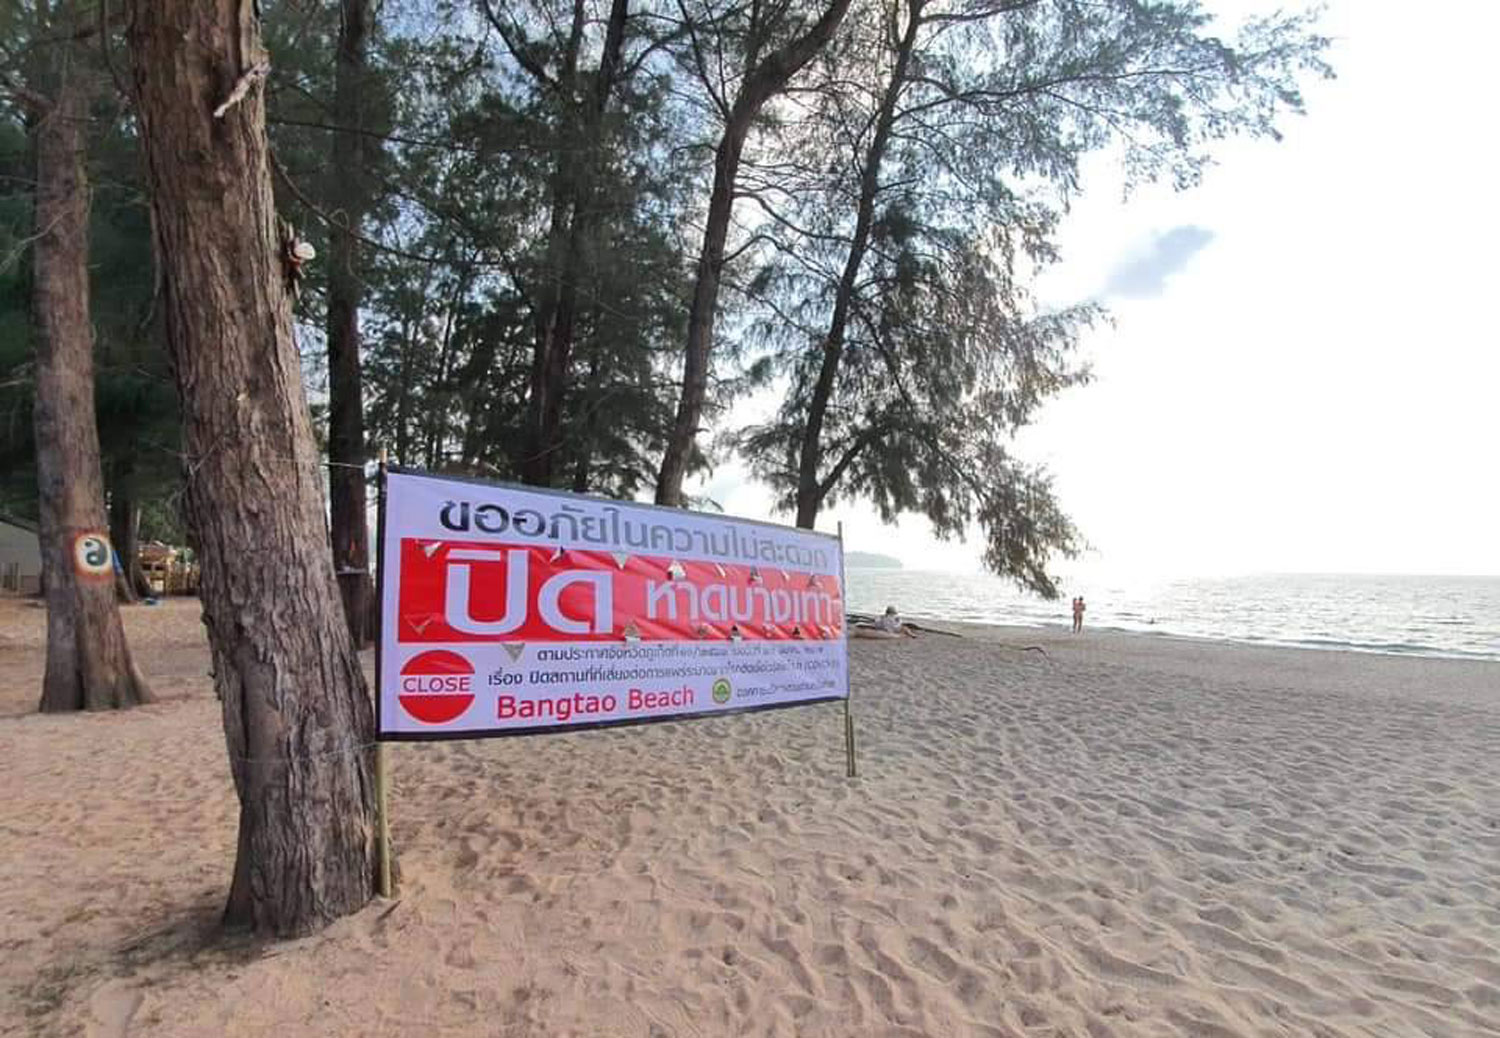 Bangtao beach in Thalang district of Phuket and other beaches in this island province remain closed to prevent the spread of Covid-19. A total of 192 cases have been reported in Phuket. (Photo: Achadtaya Chuenniran)